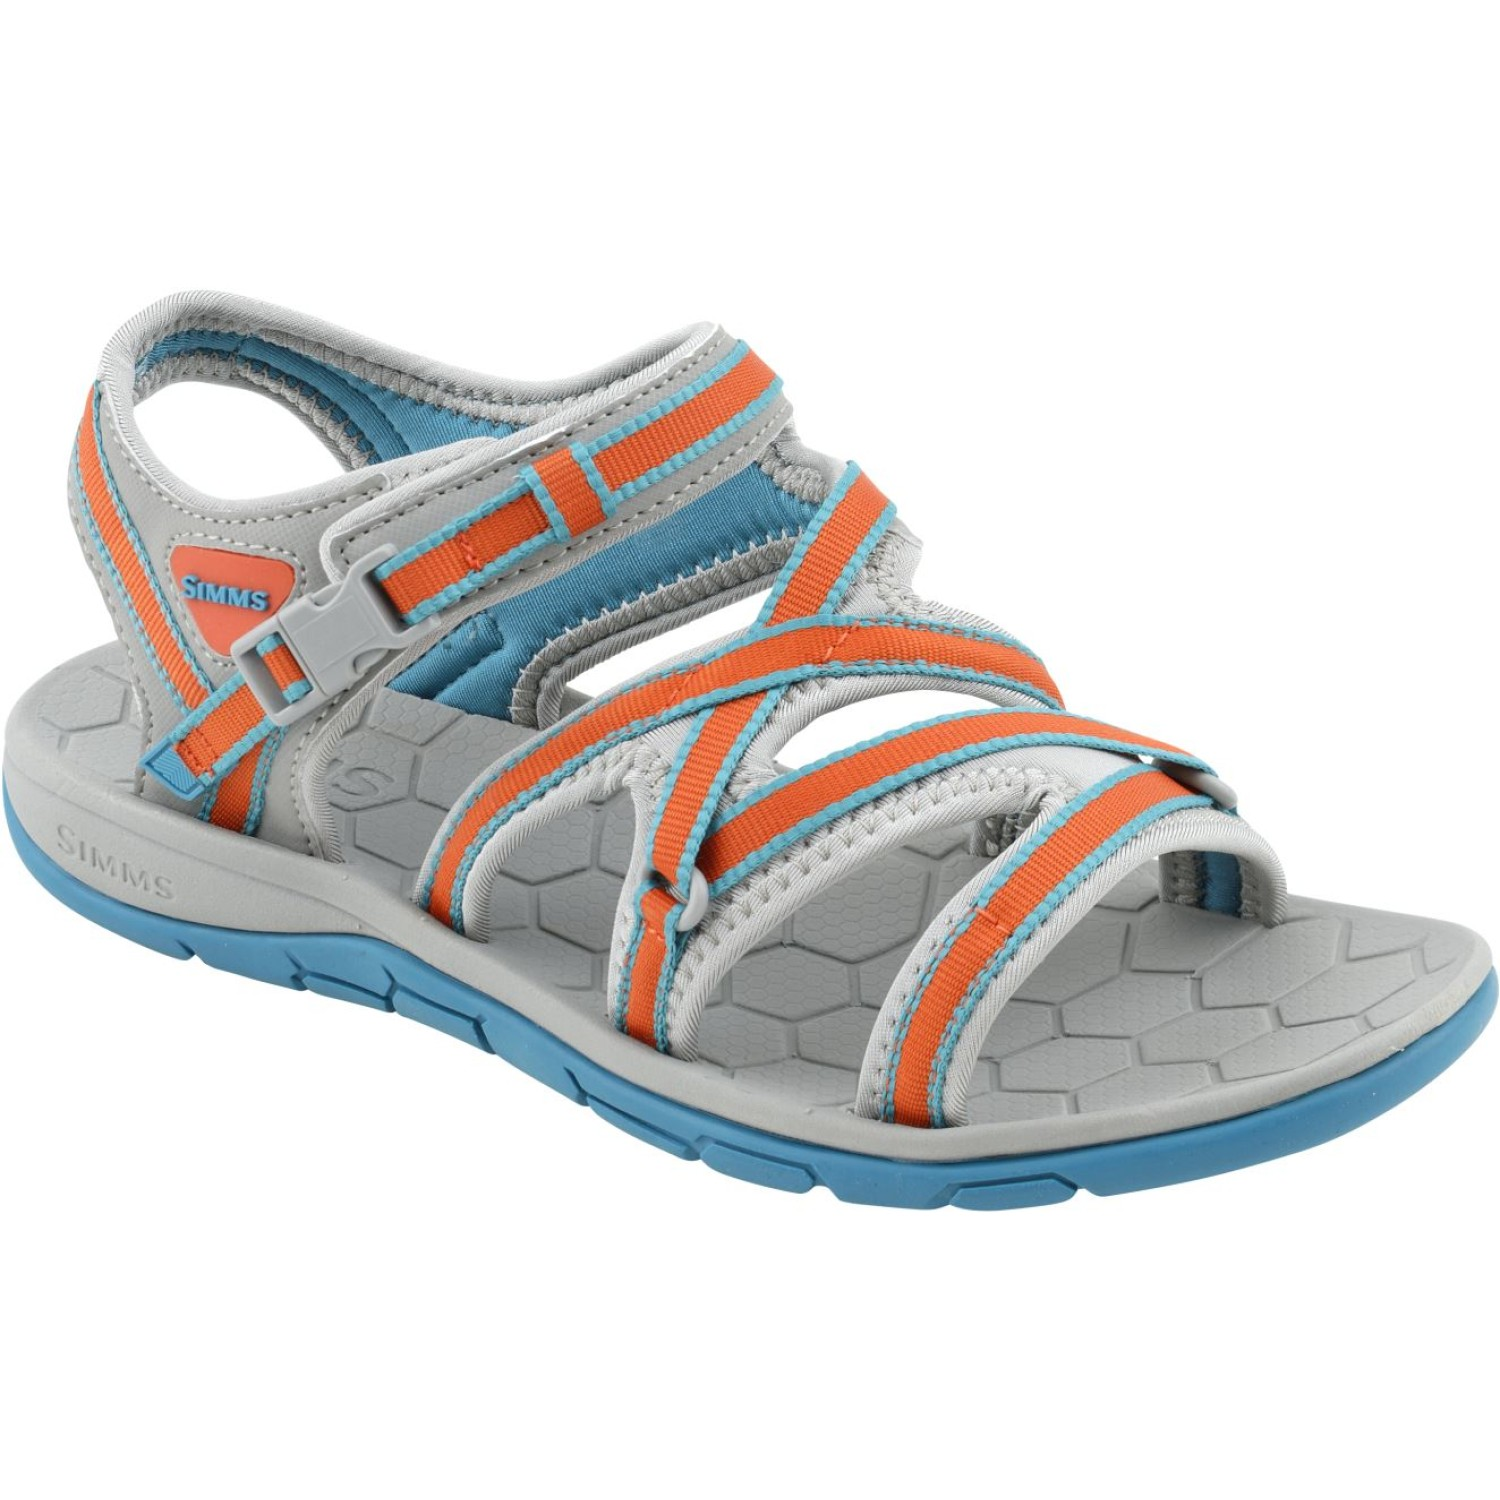 Simms Women's Clearwater Sandal Lagoon